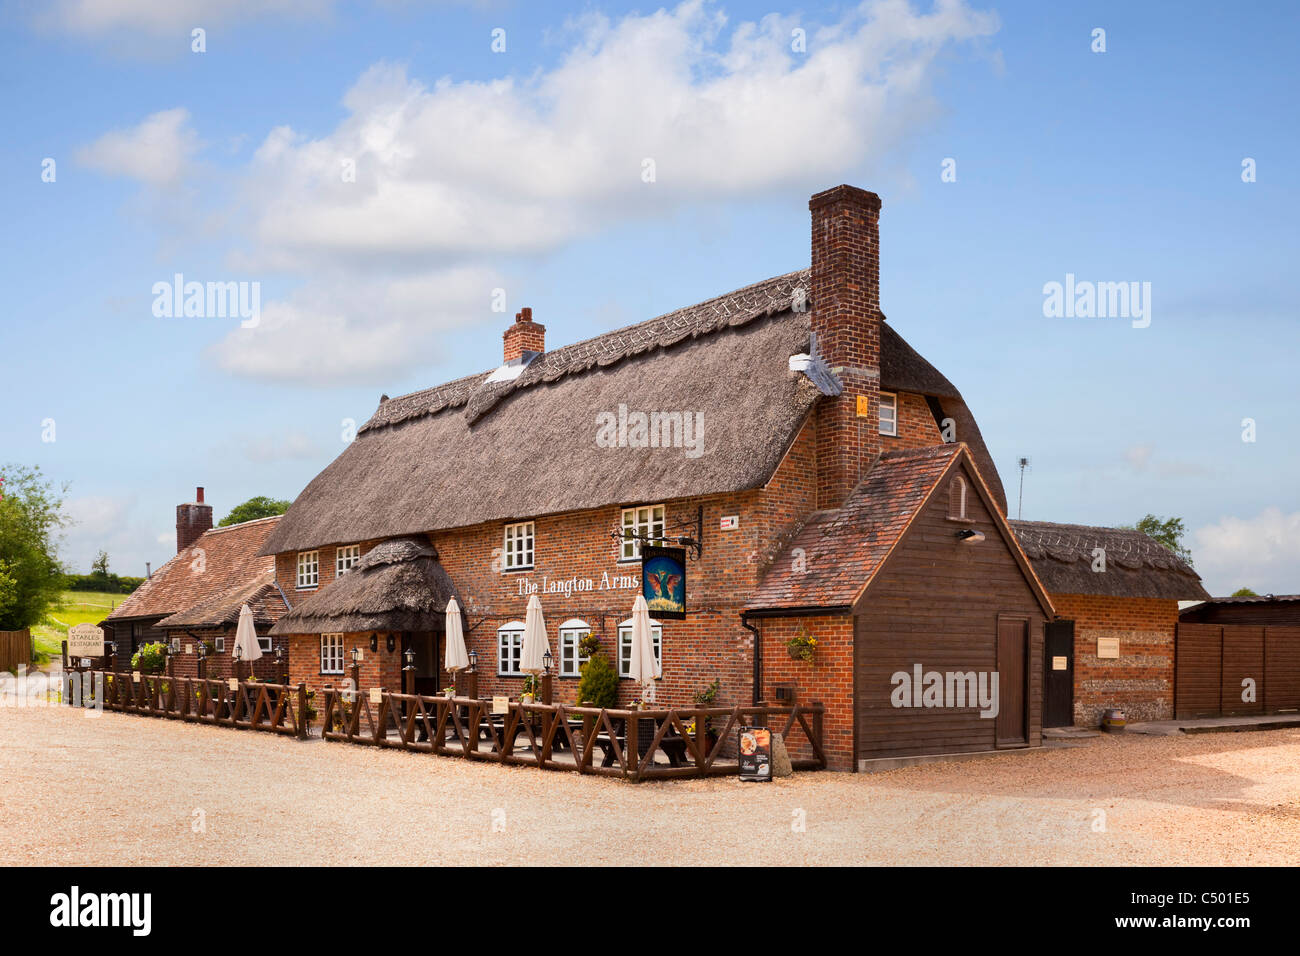 The Langton Arms thatched tavern village pub in Tarrant Monkton, Dorset, England, UK - Stock Image